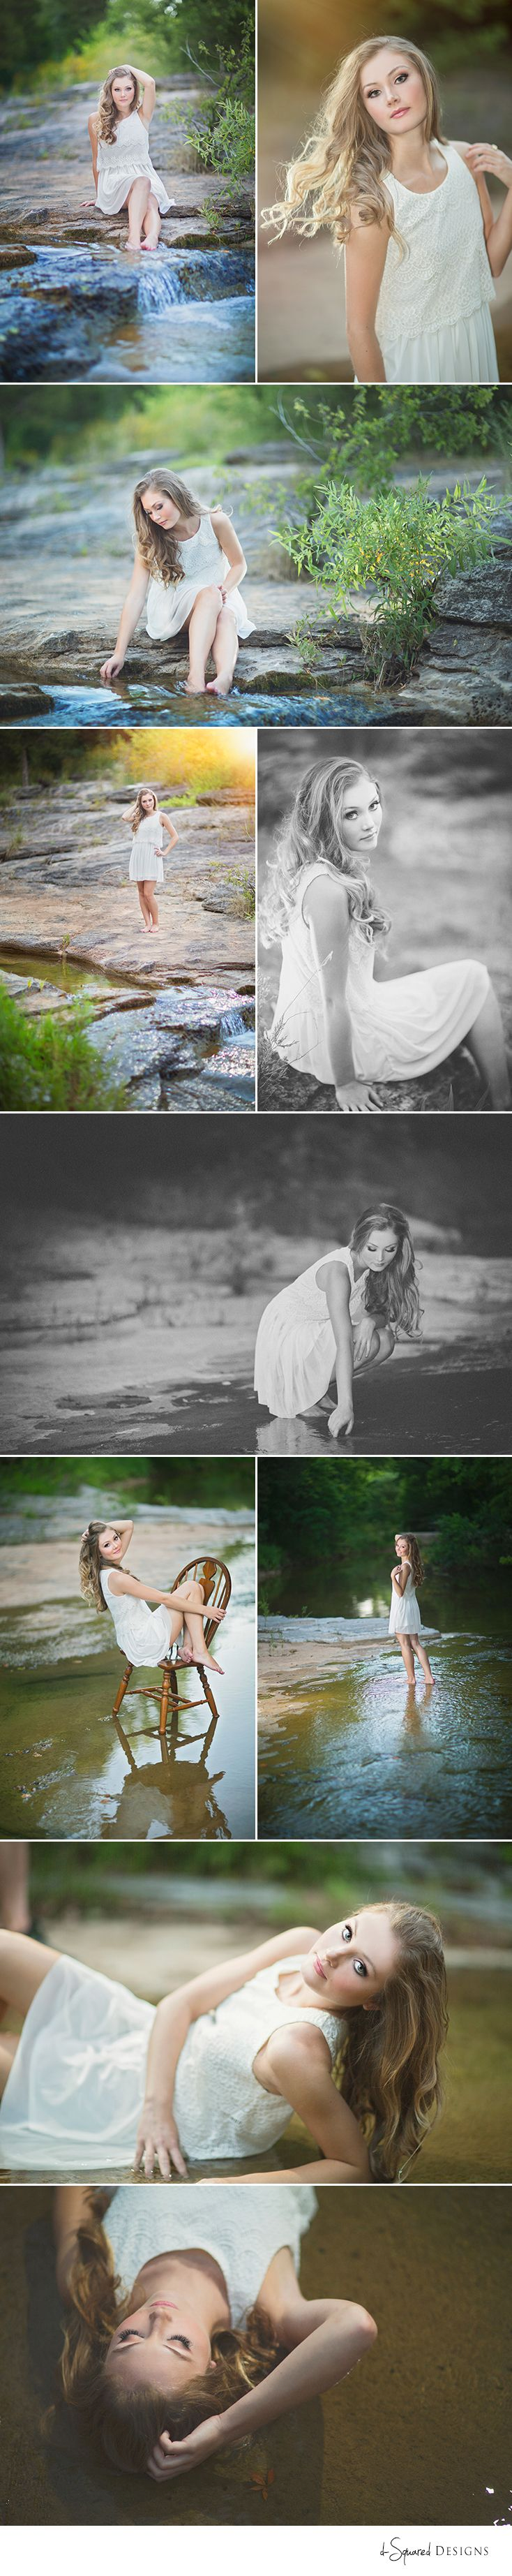 Senior girl photography by d-Squared Designs. St. Louis, MO Senior photographer. Missouri senior photographer. River and creek with water senior session . fotografa de 15 años cordoba ideas